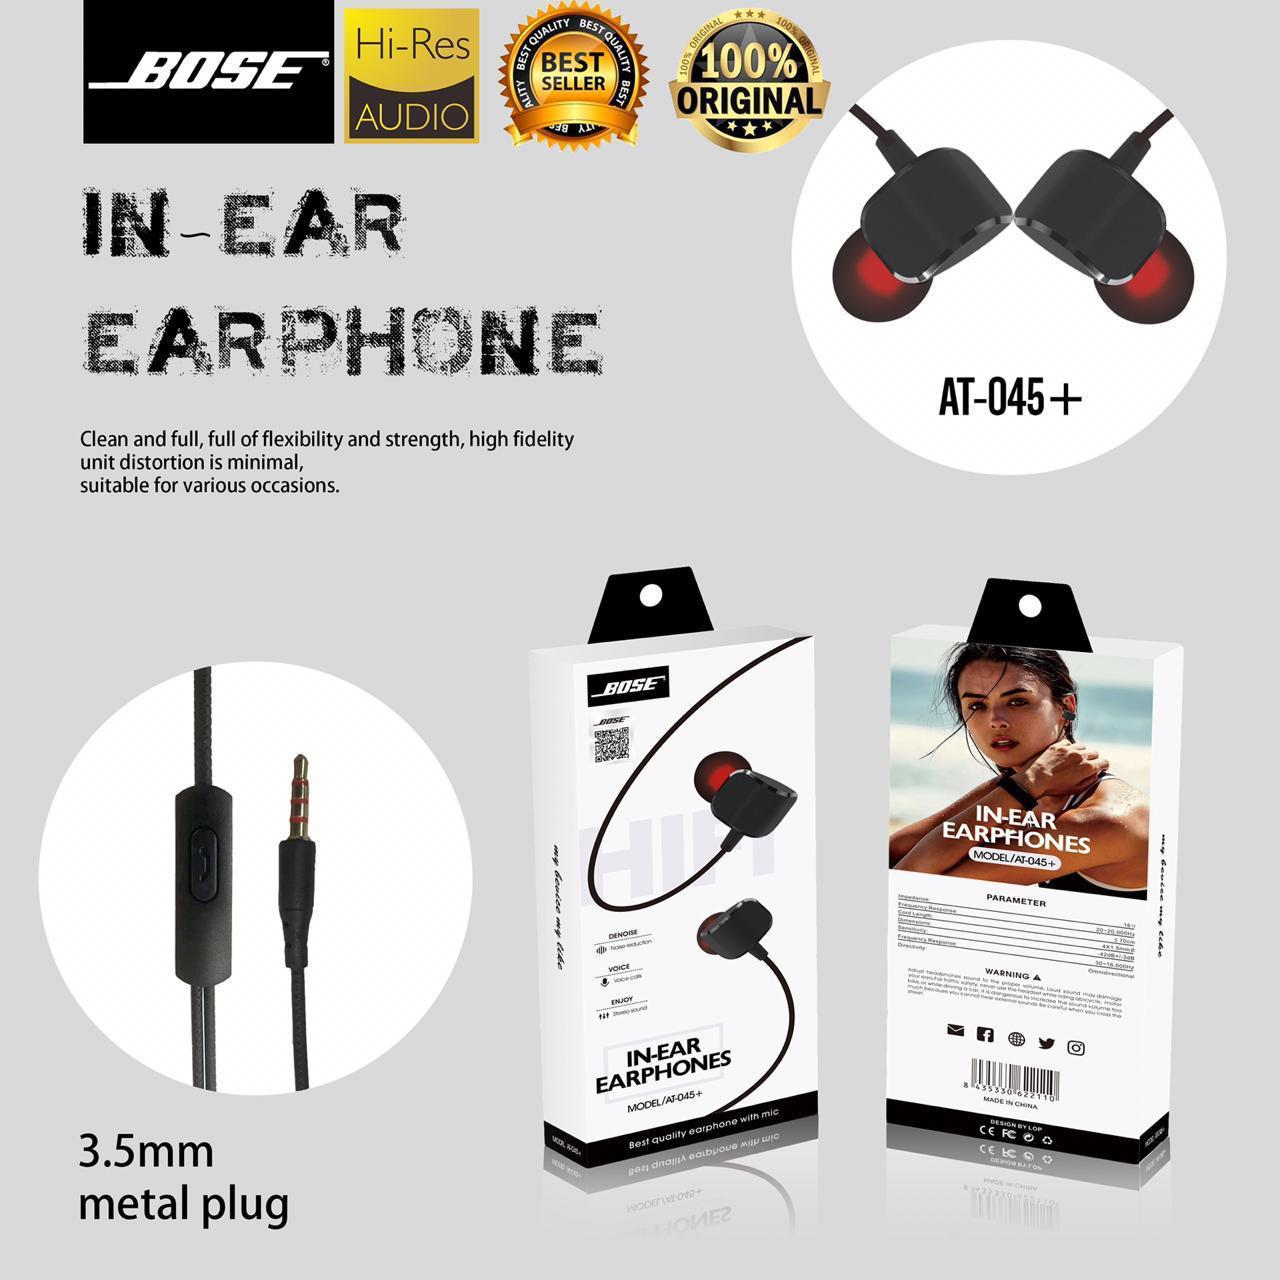 Handsfree Bose AT-045 New